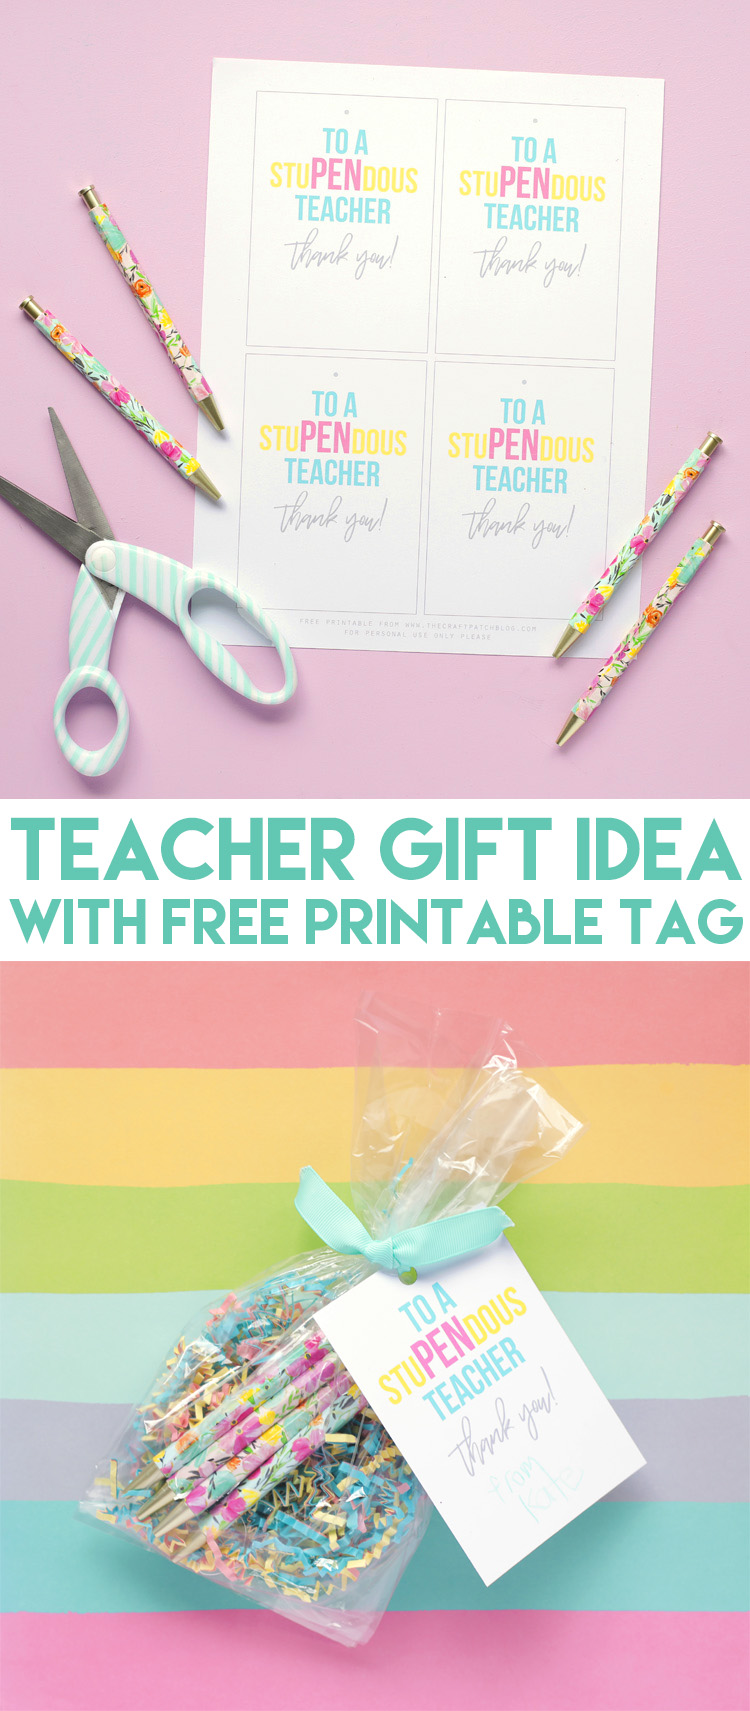 photograph regarding Free Printable Teacher Gift Tags identified as StuPENdous Instructor Appreciation Present Notion with Free of charge